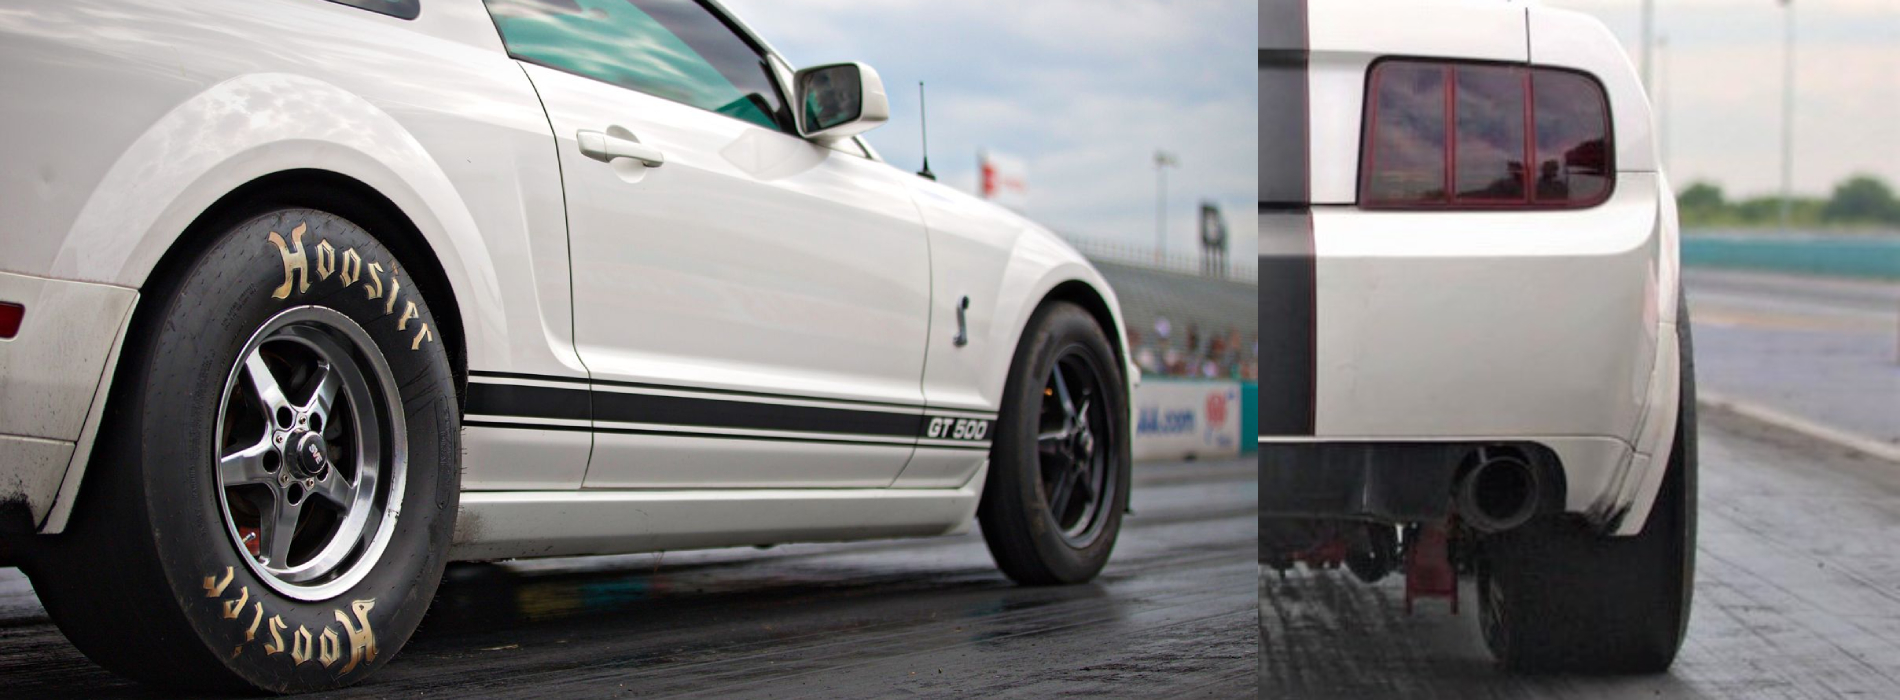 Drag Radials Vs Slicks | Tire Differences - Drag Radials Vs Slicks | Tire Differences